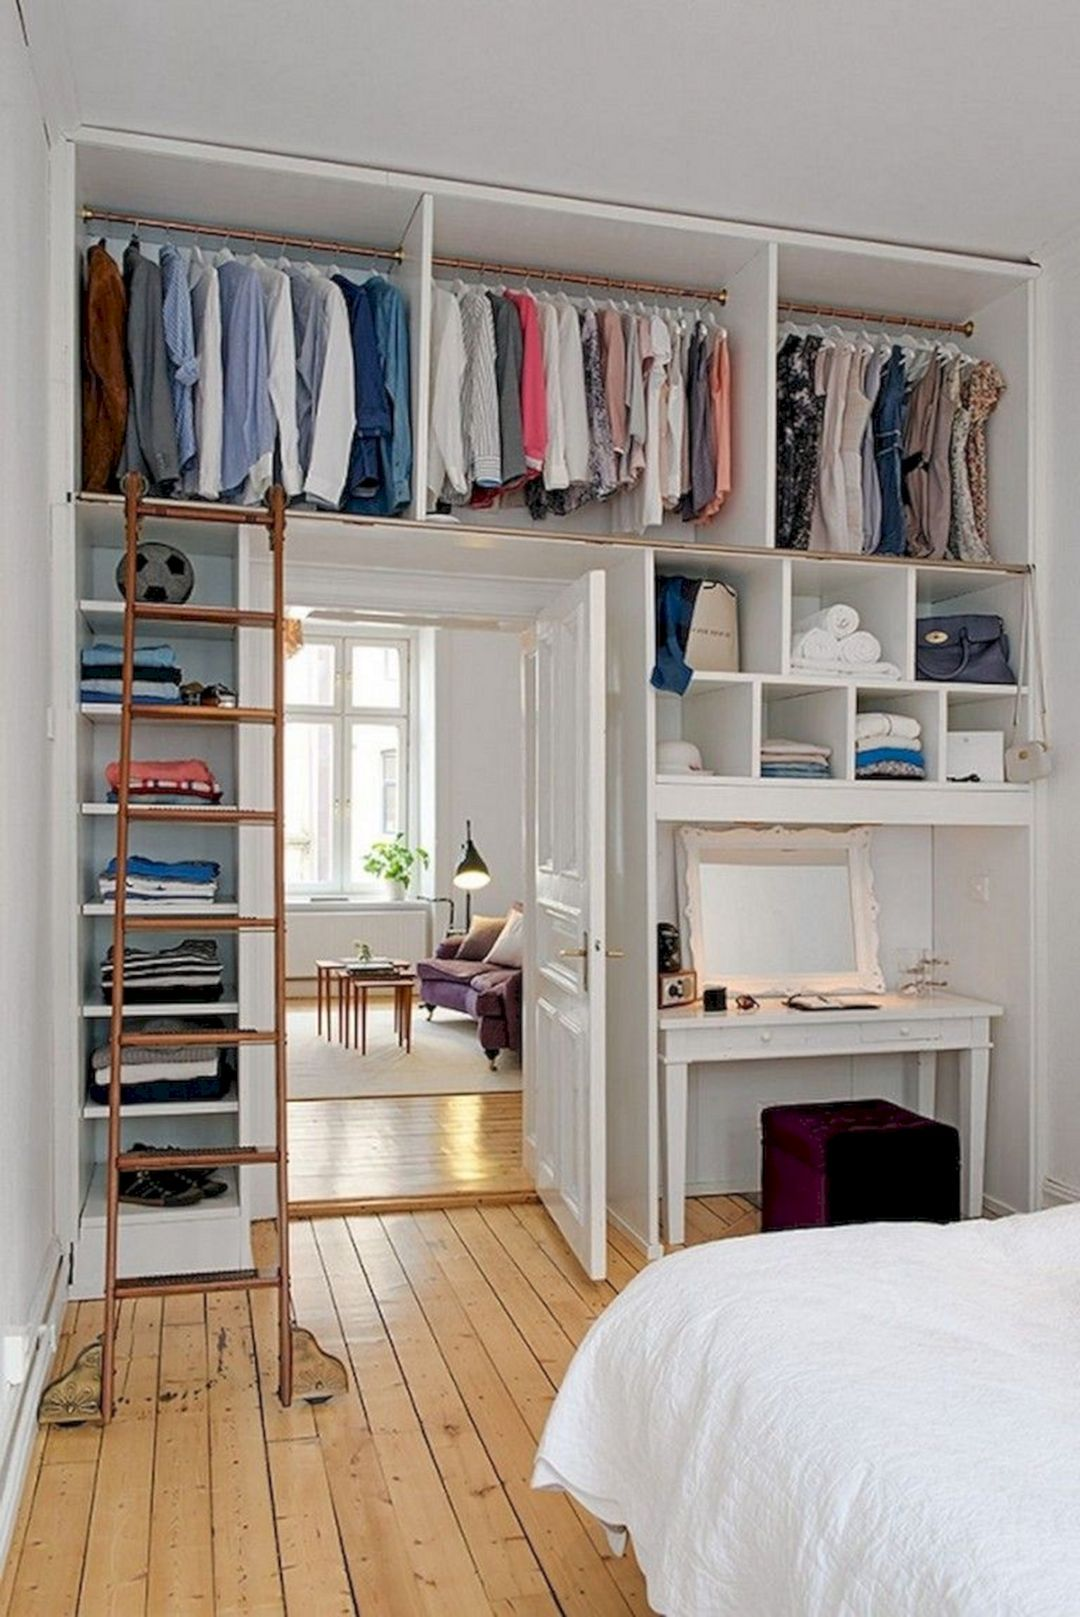 Breathtaking 25 Best And Beautiful Bedroom Organization Ideas You Have To Know Https Usdec Small Bedroom Designs Minimalist Bedroom Design Minimalist Bedroom